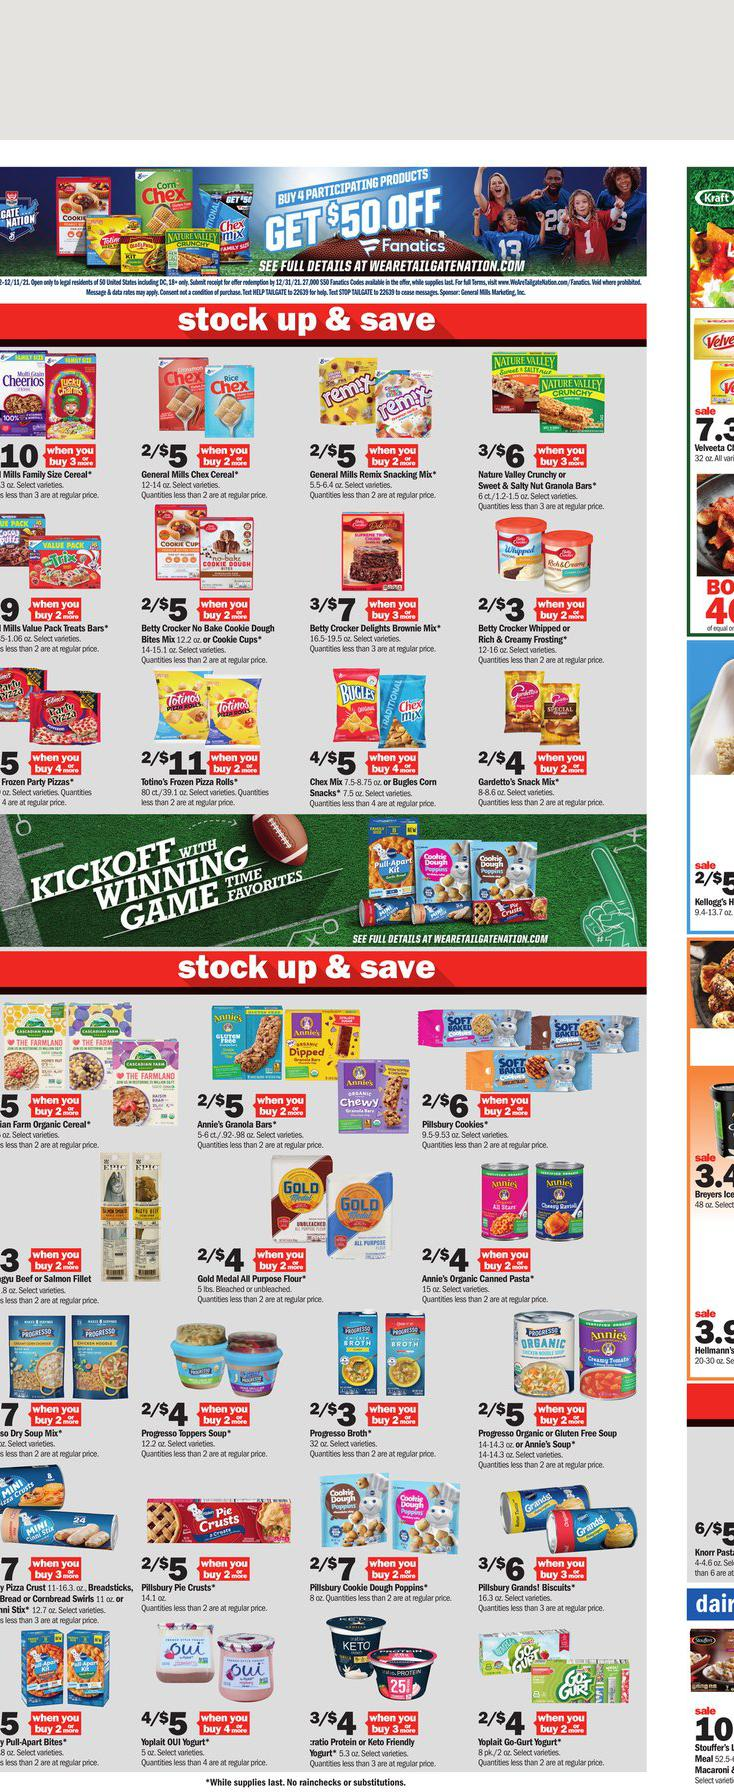 10.10.2021 Meijer ad 6. page